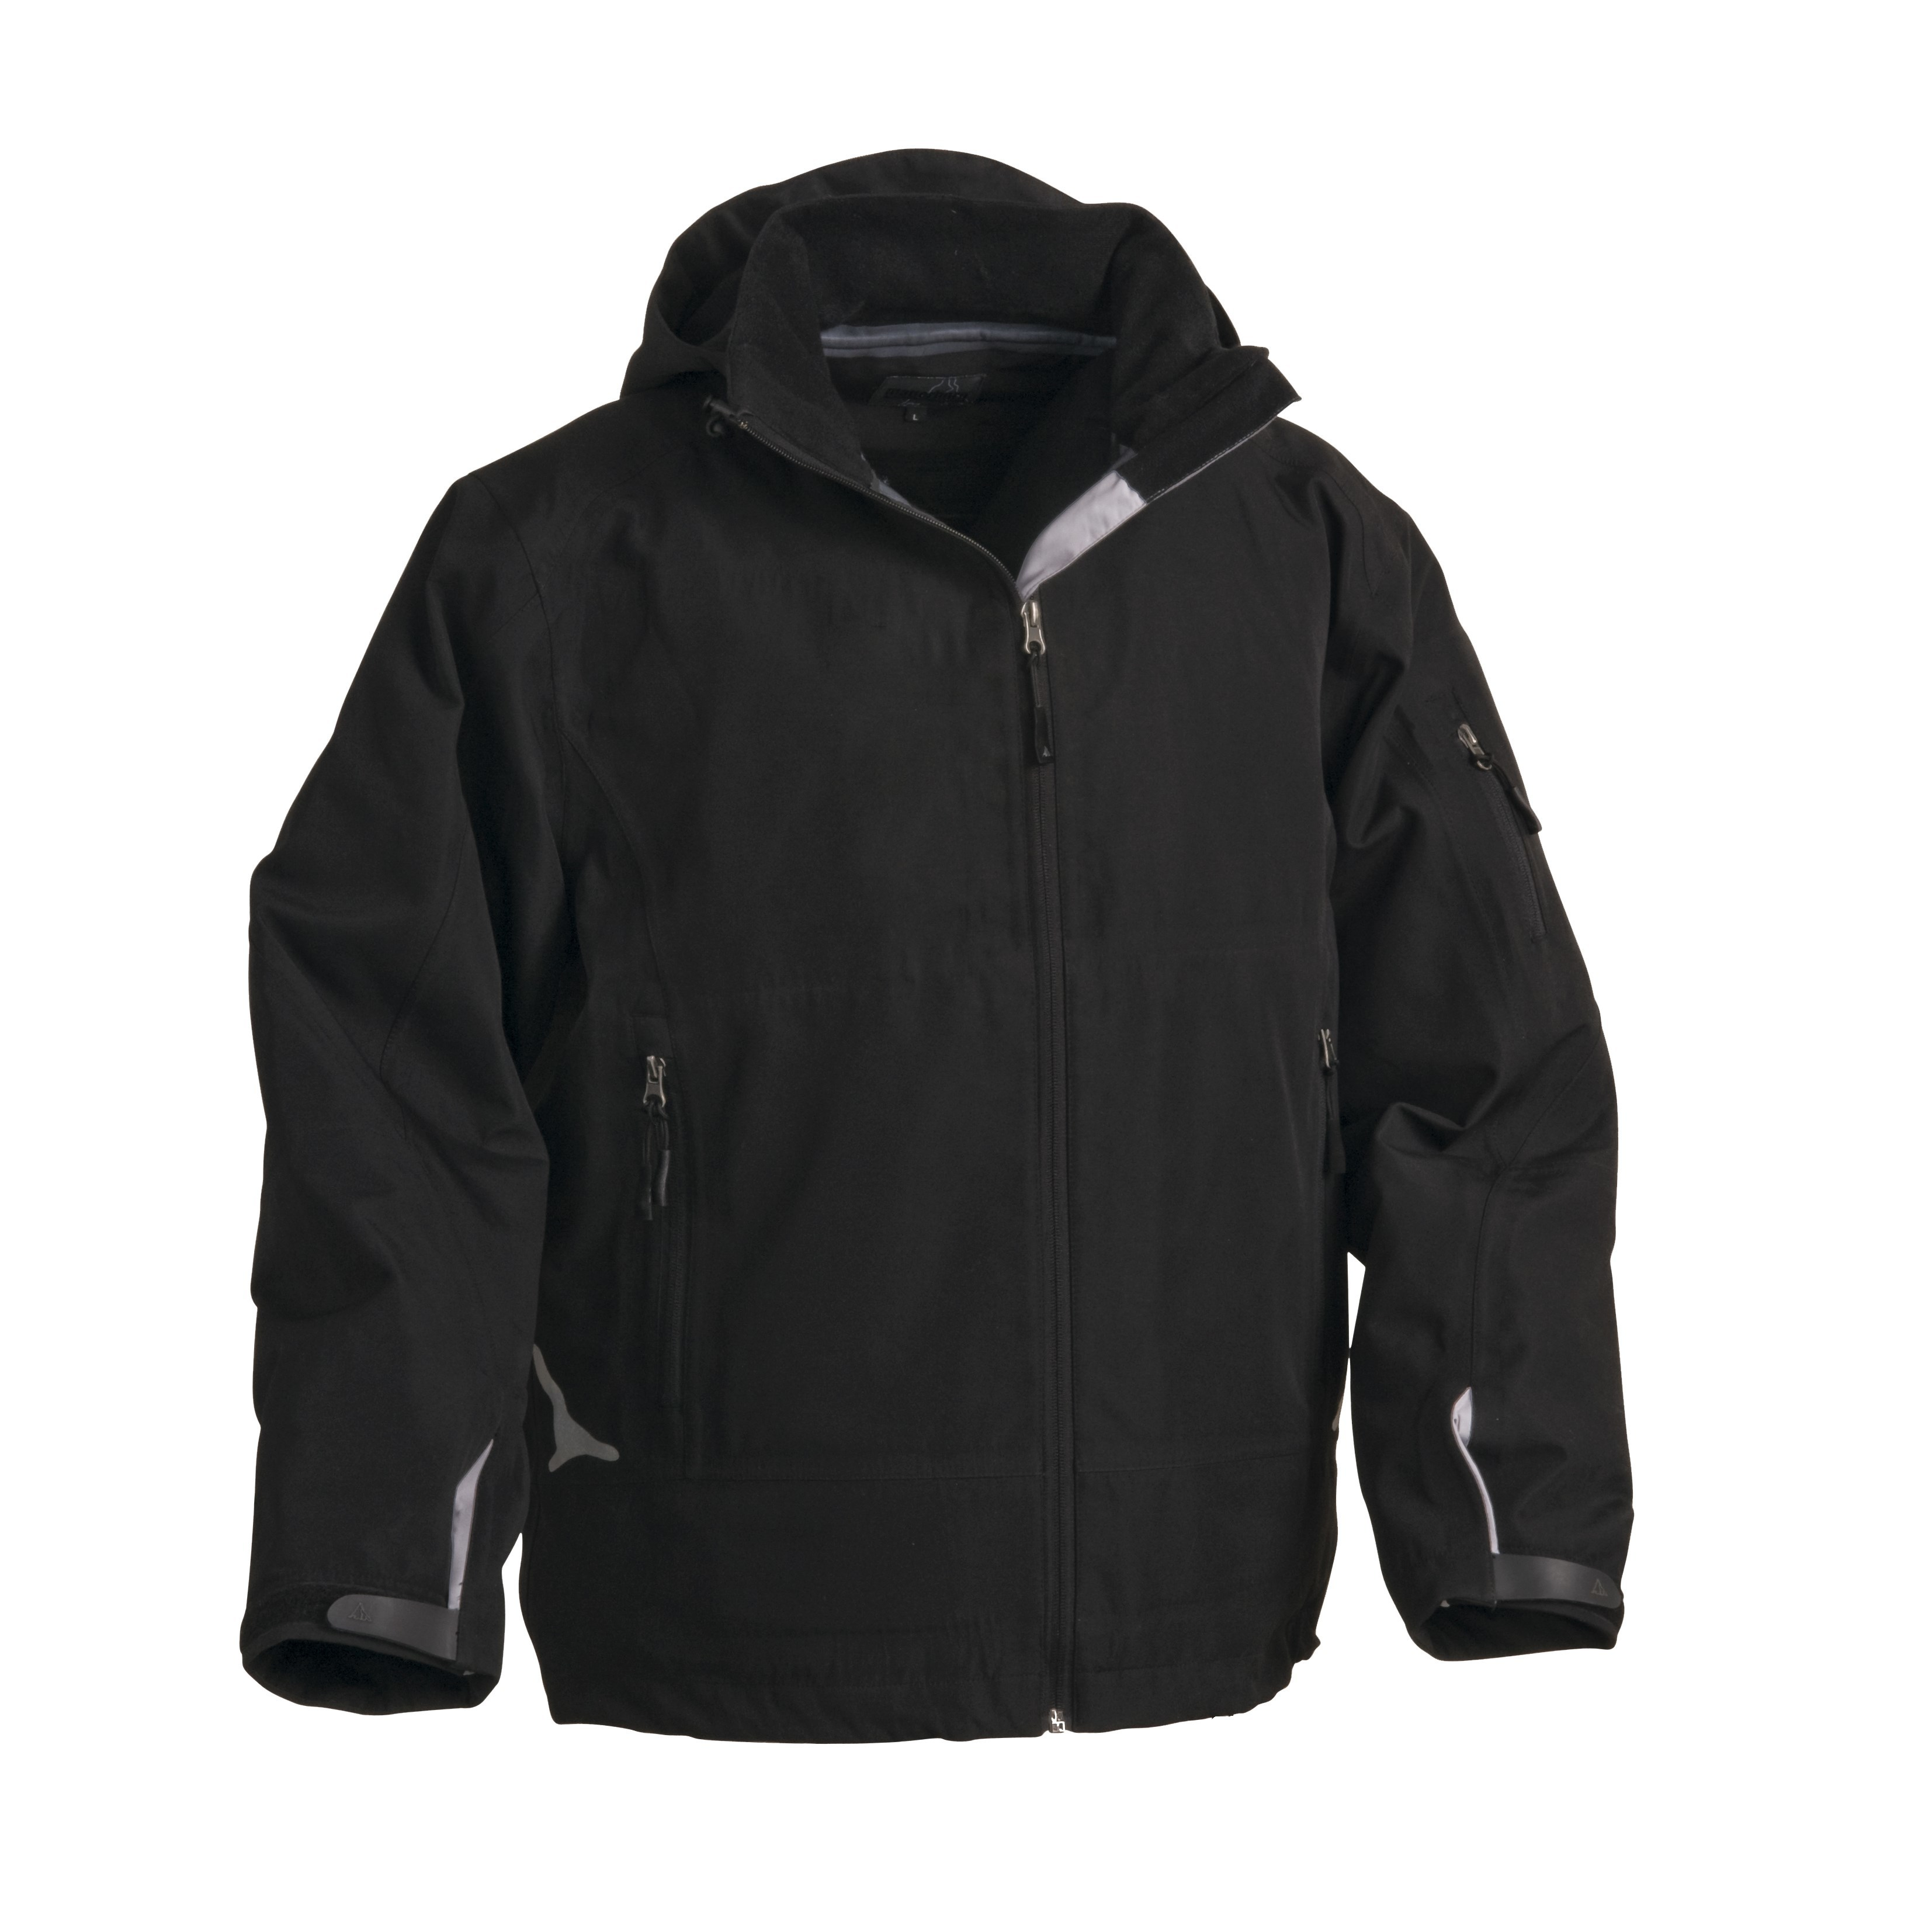 Matterhorn MH-437D Shell Jacket Ladies Black 34